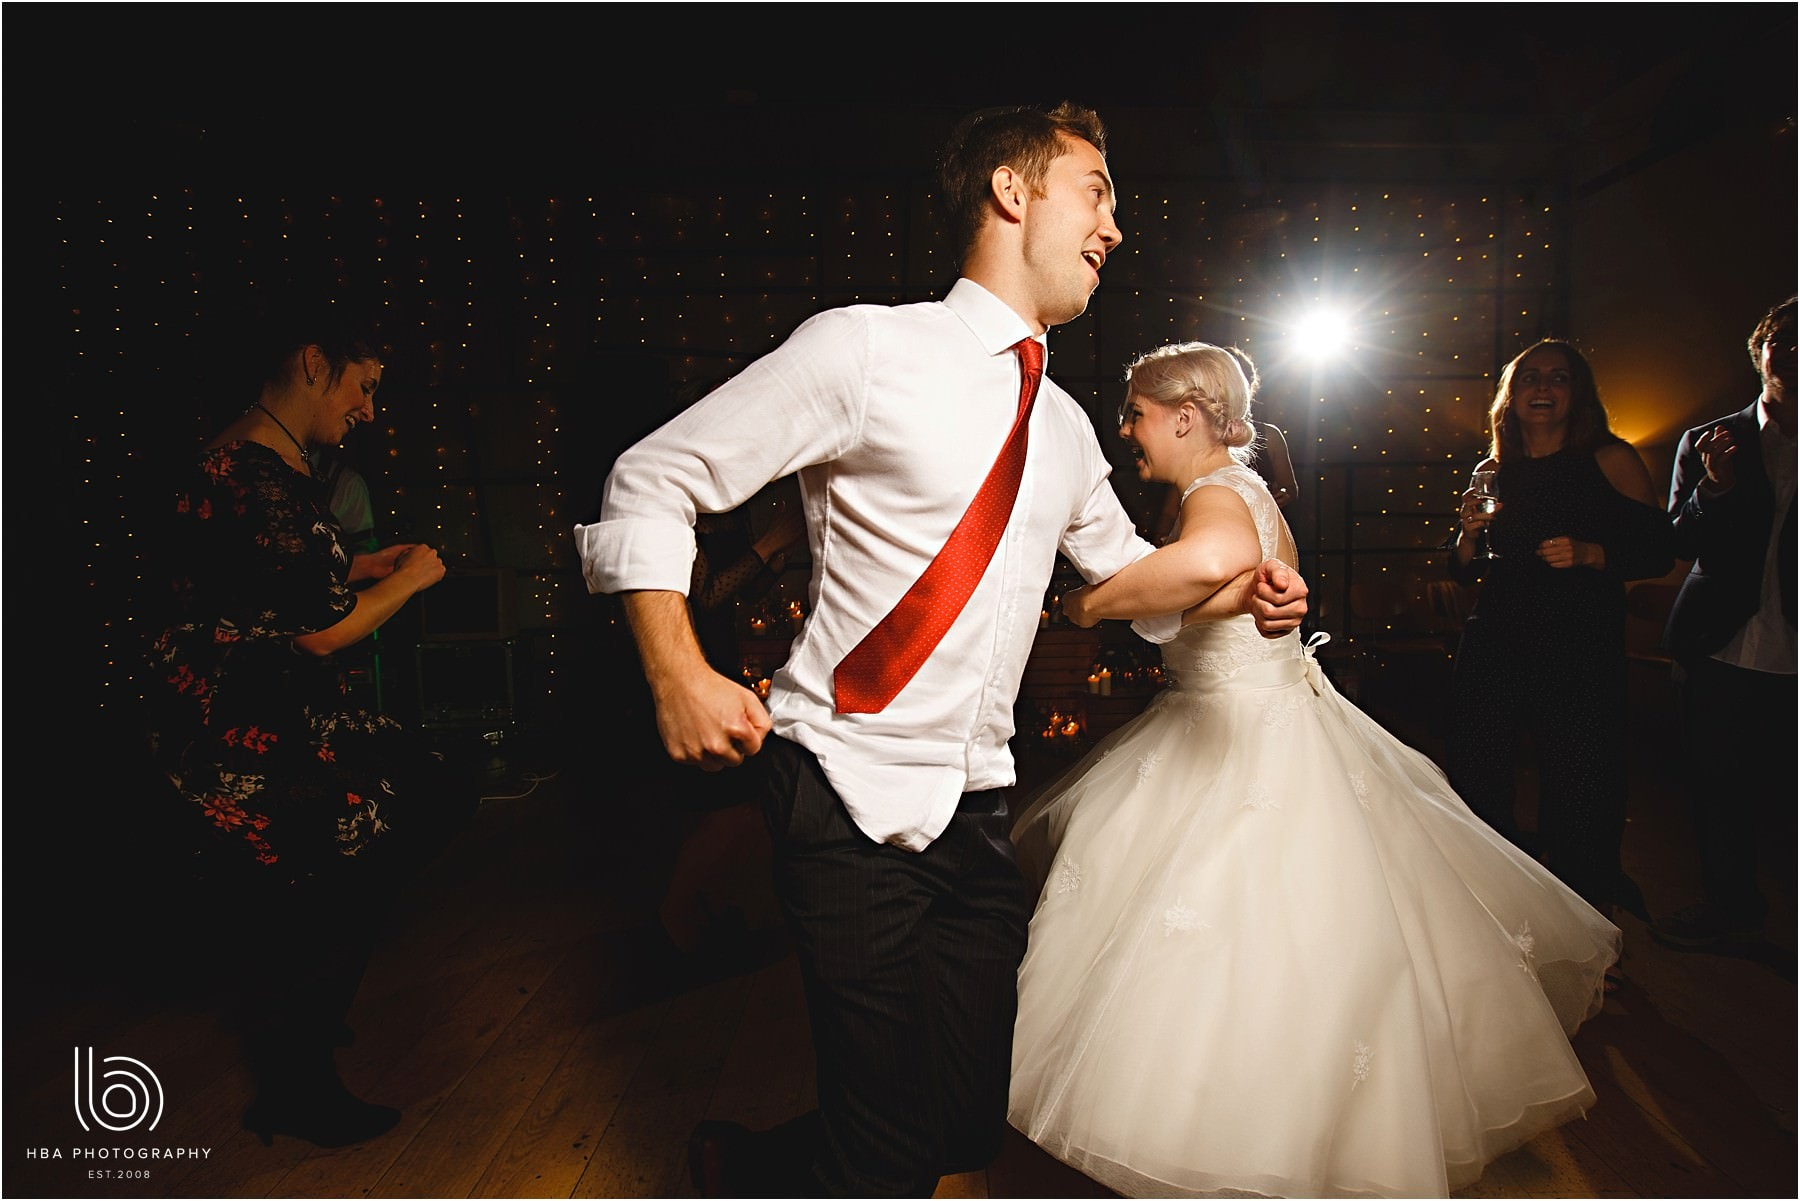 The bride dancing with friends at her wedding